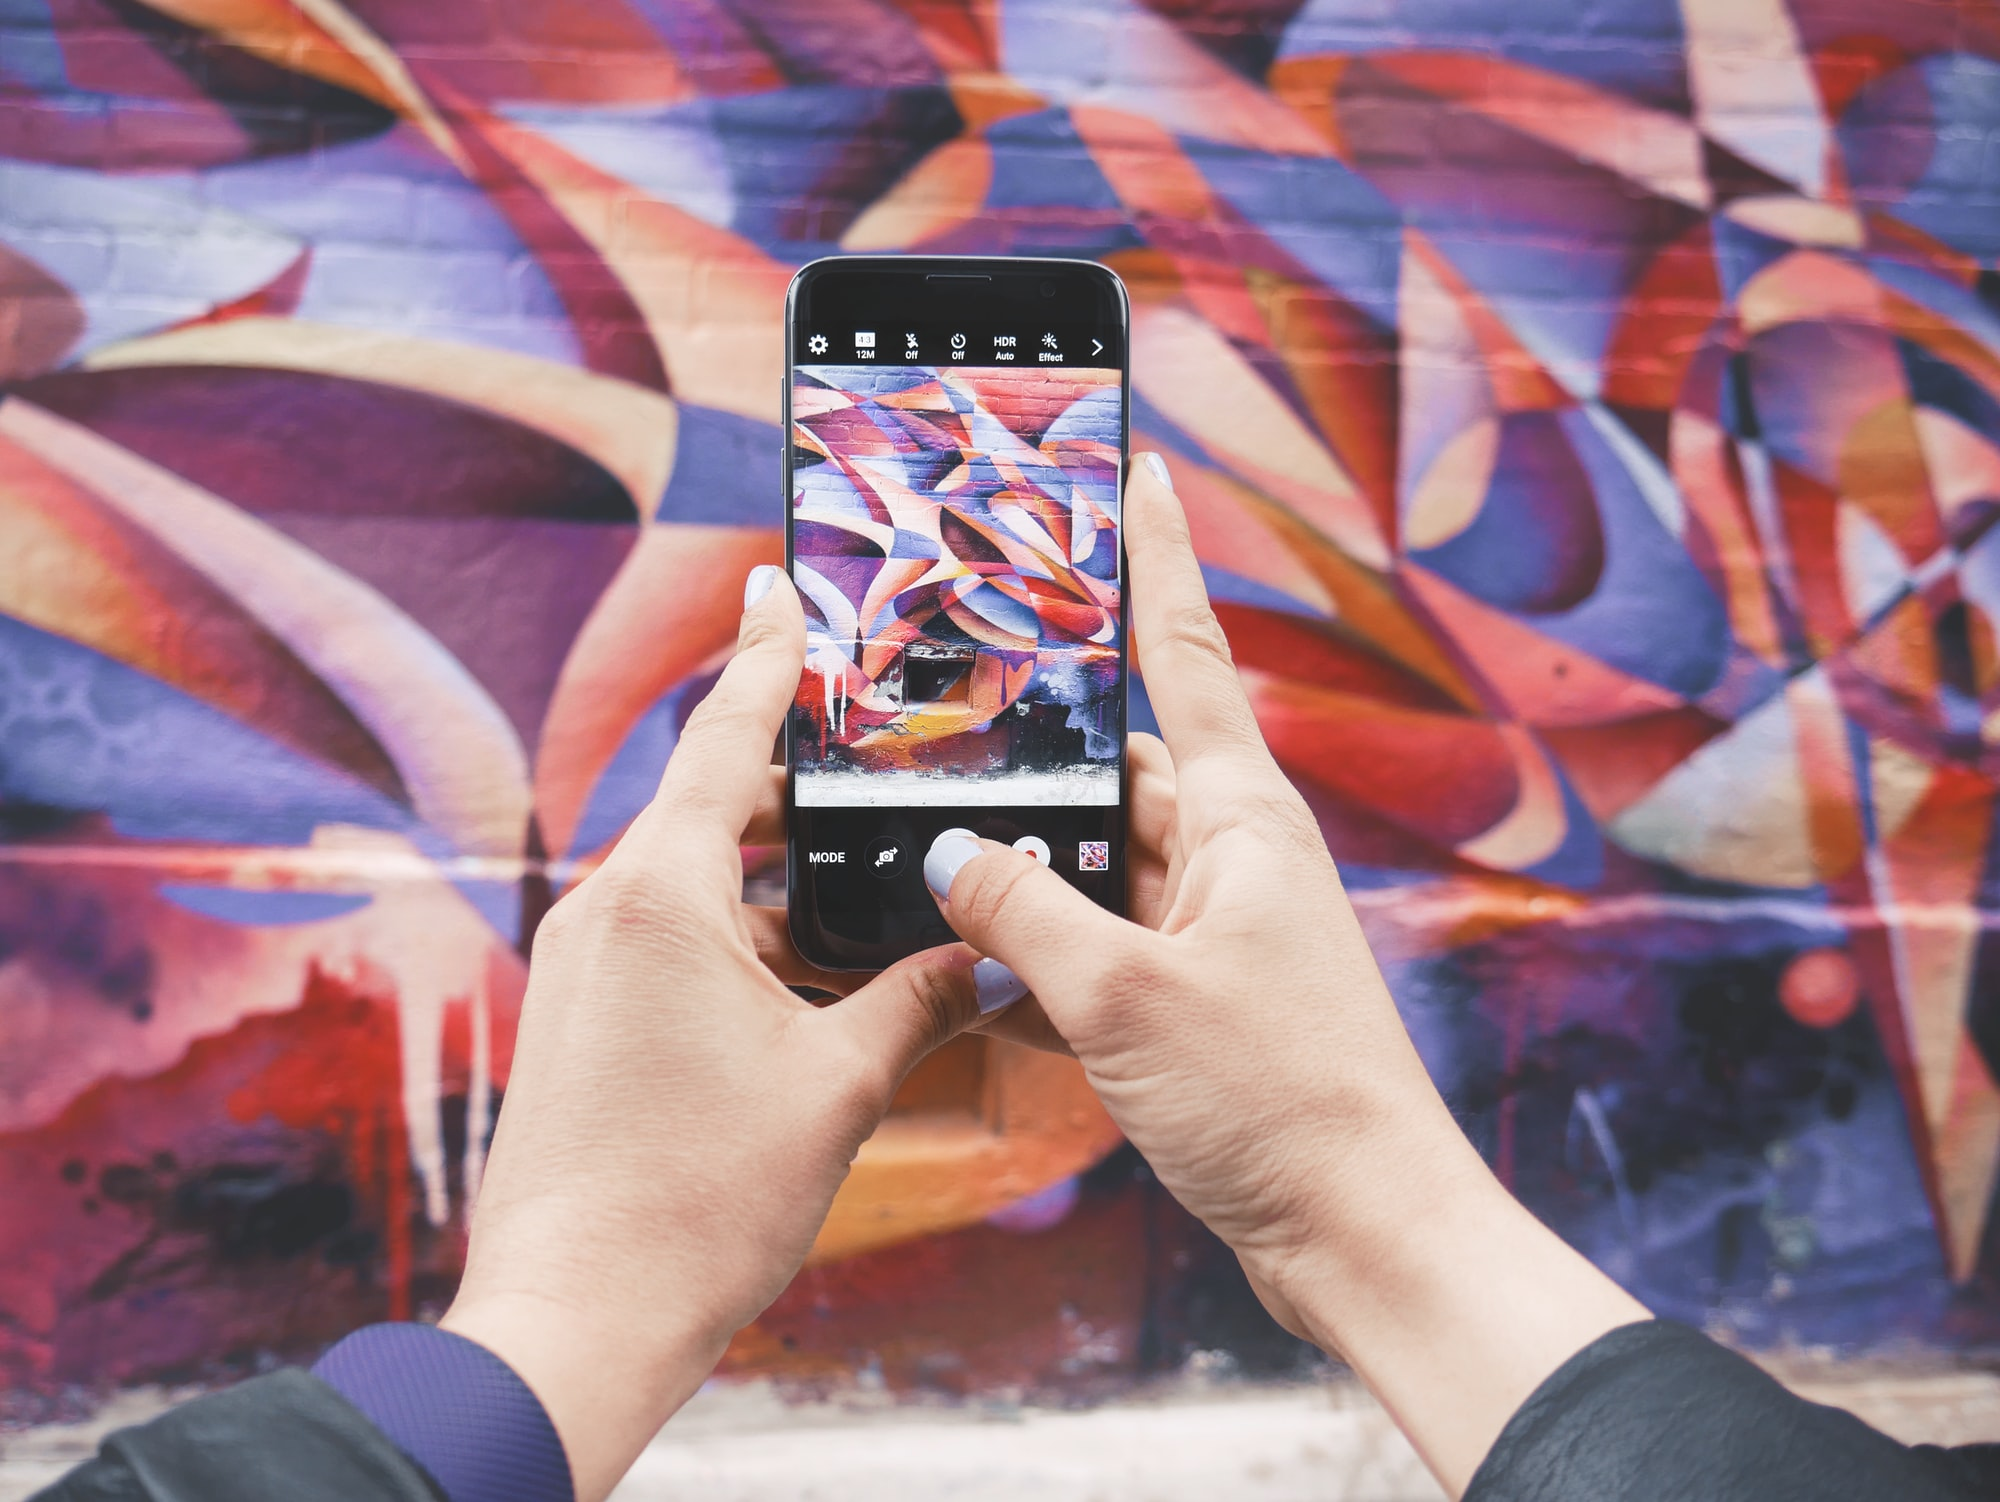 Iphone taking picture of graffiti